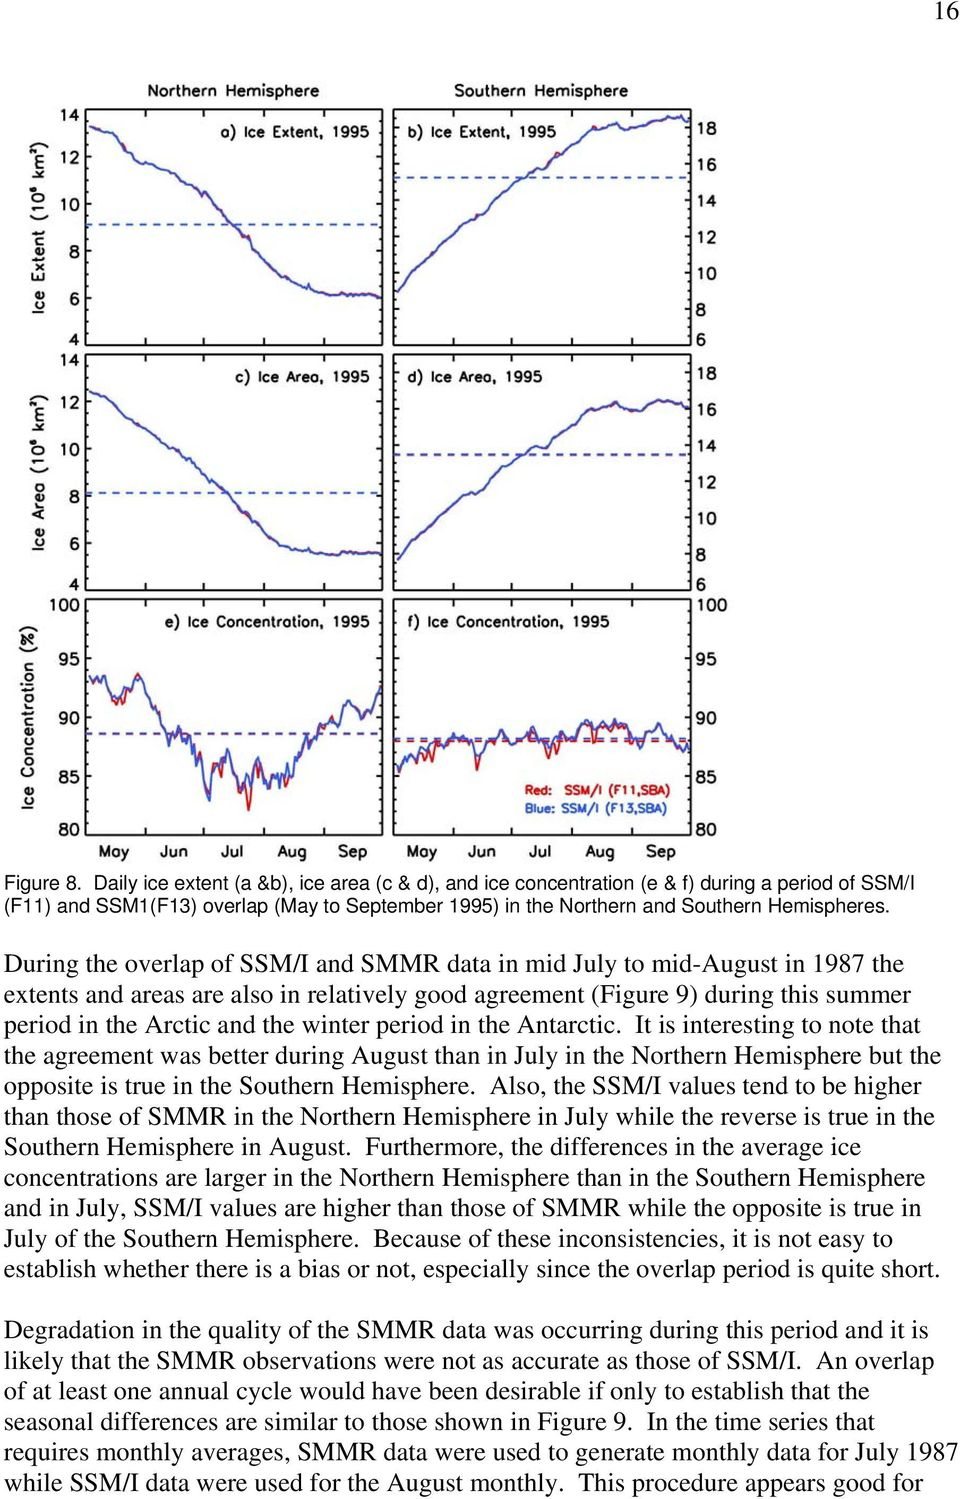 During the overlap of SSM/I and SMMR data in mid July to mid-august in 1987 the extents and areas are also in relatively good agreement (Figure 9) during this summer period in the Arctic and the